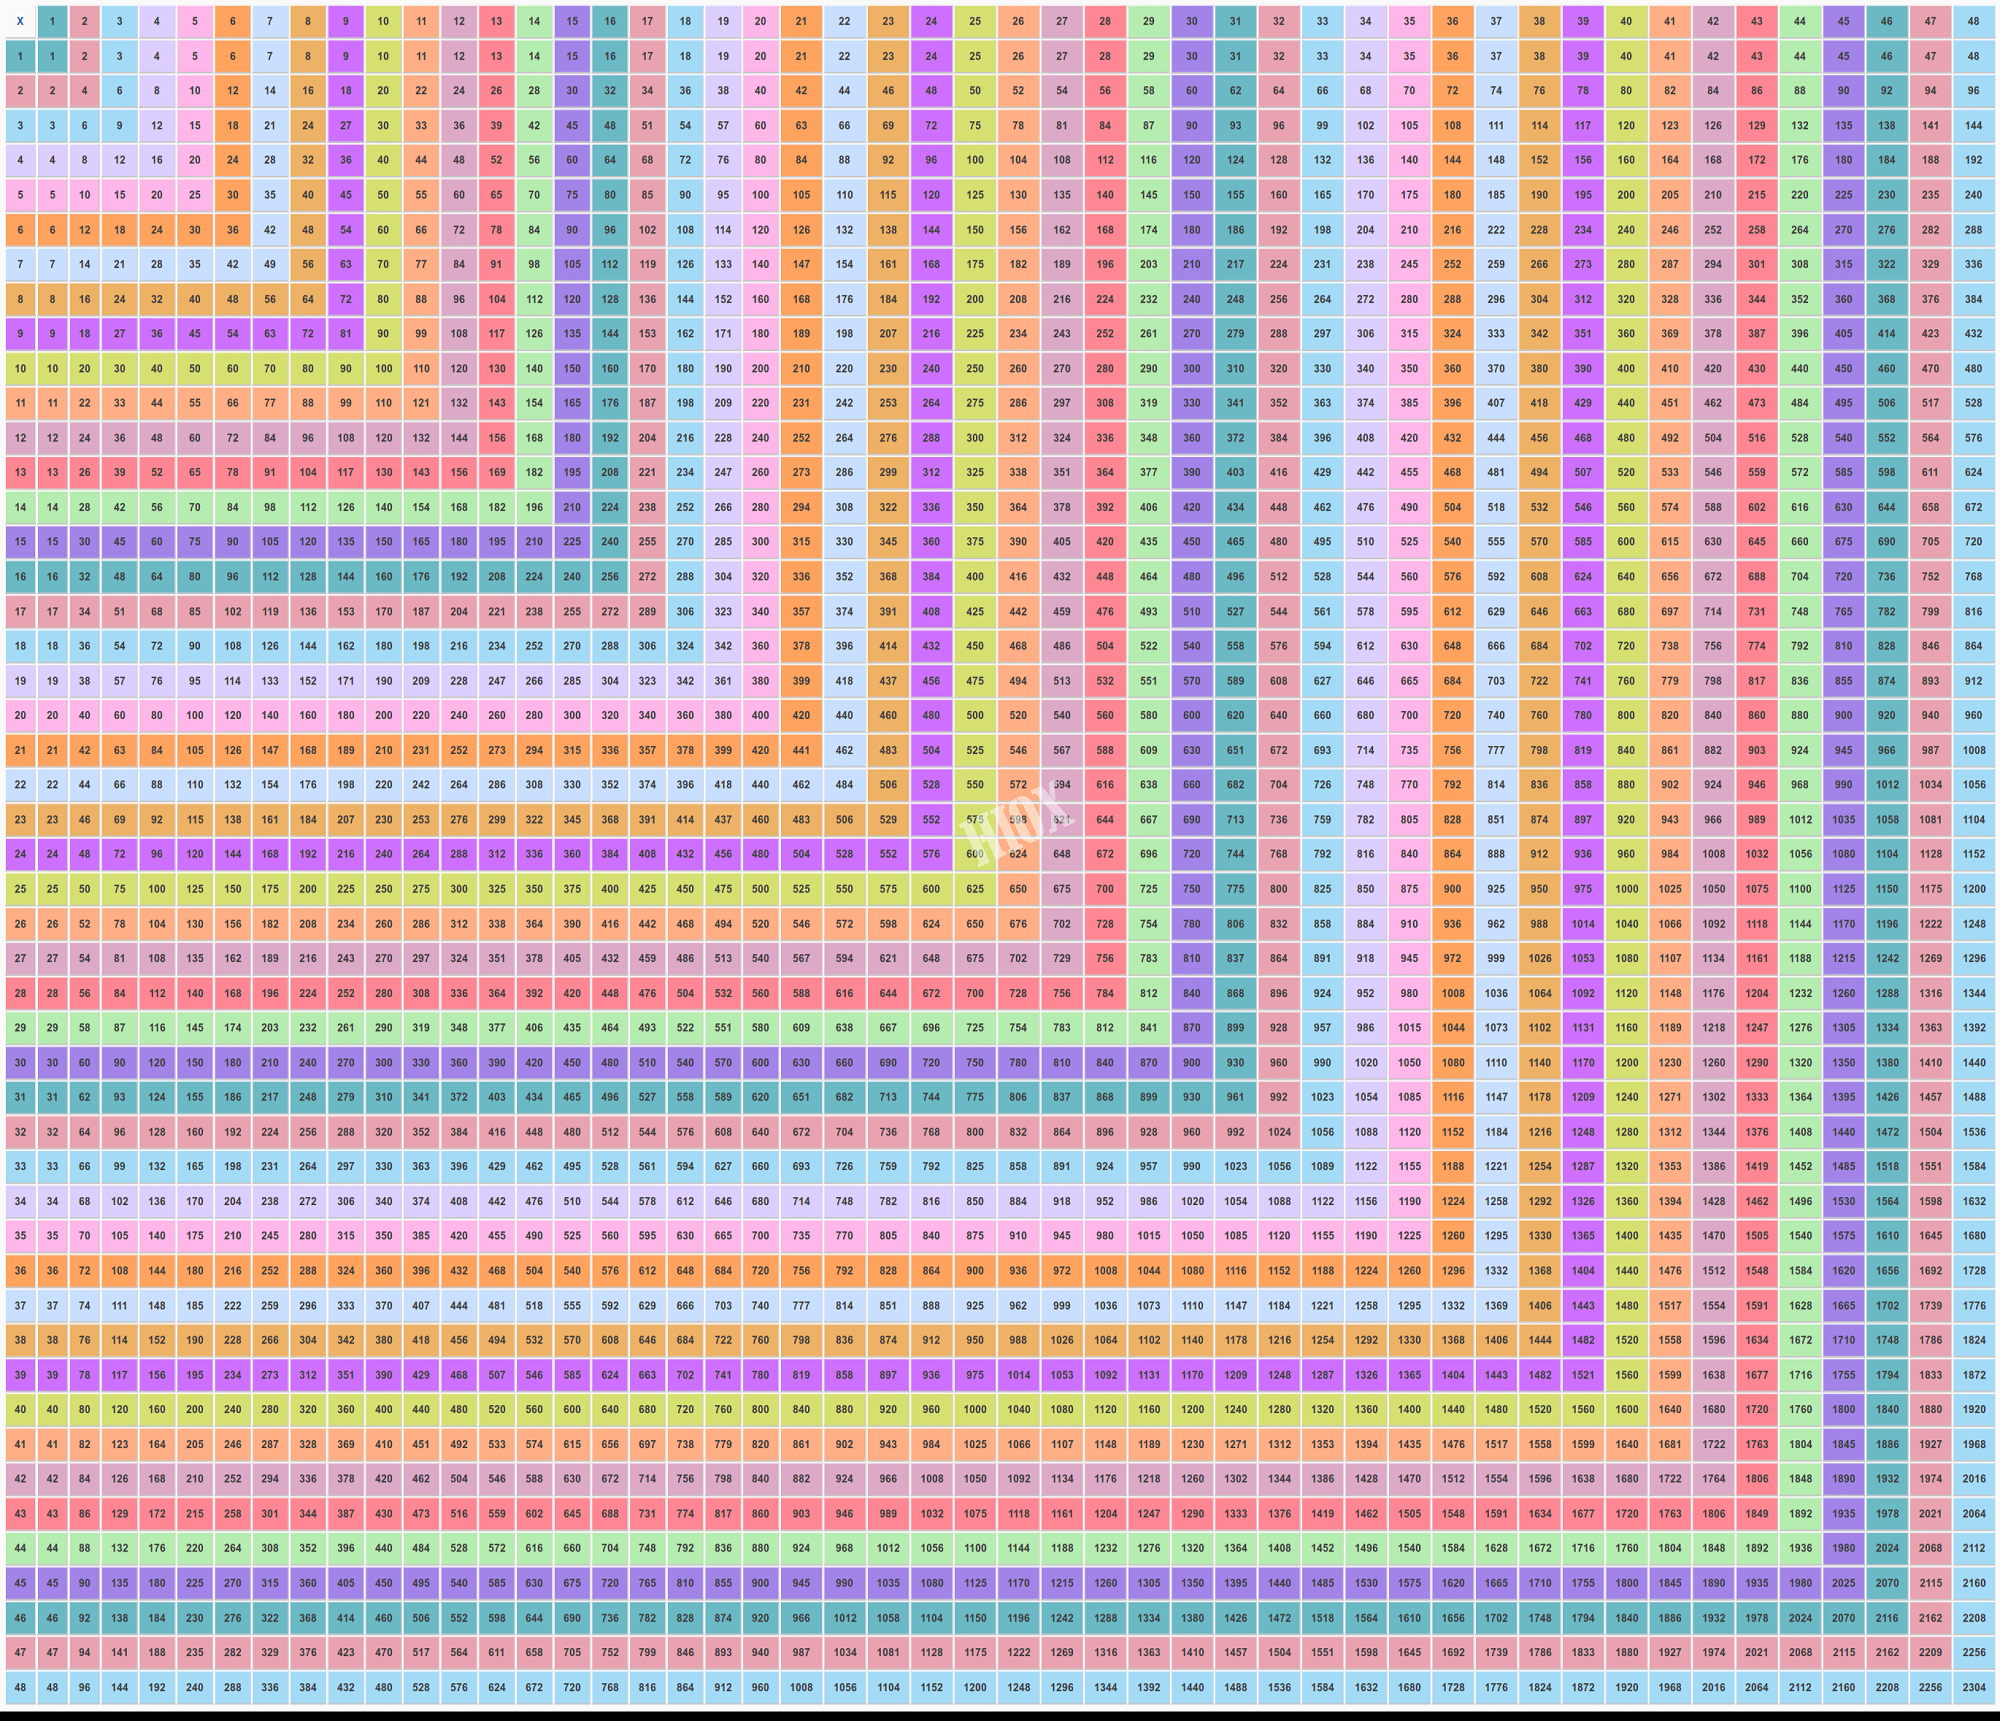 100 times table chart colorful